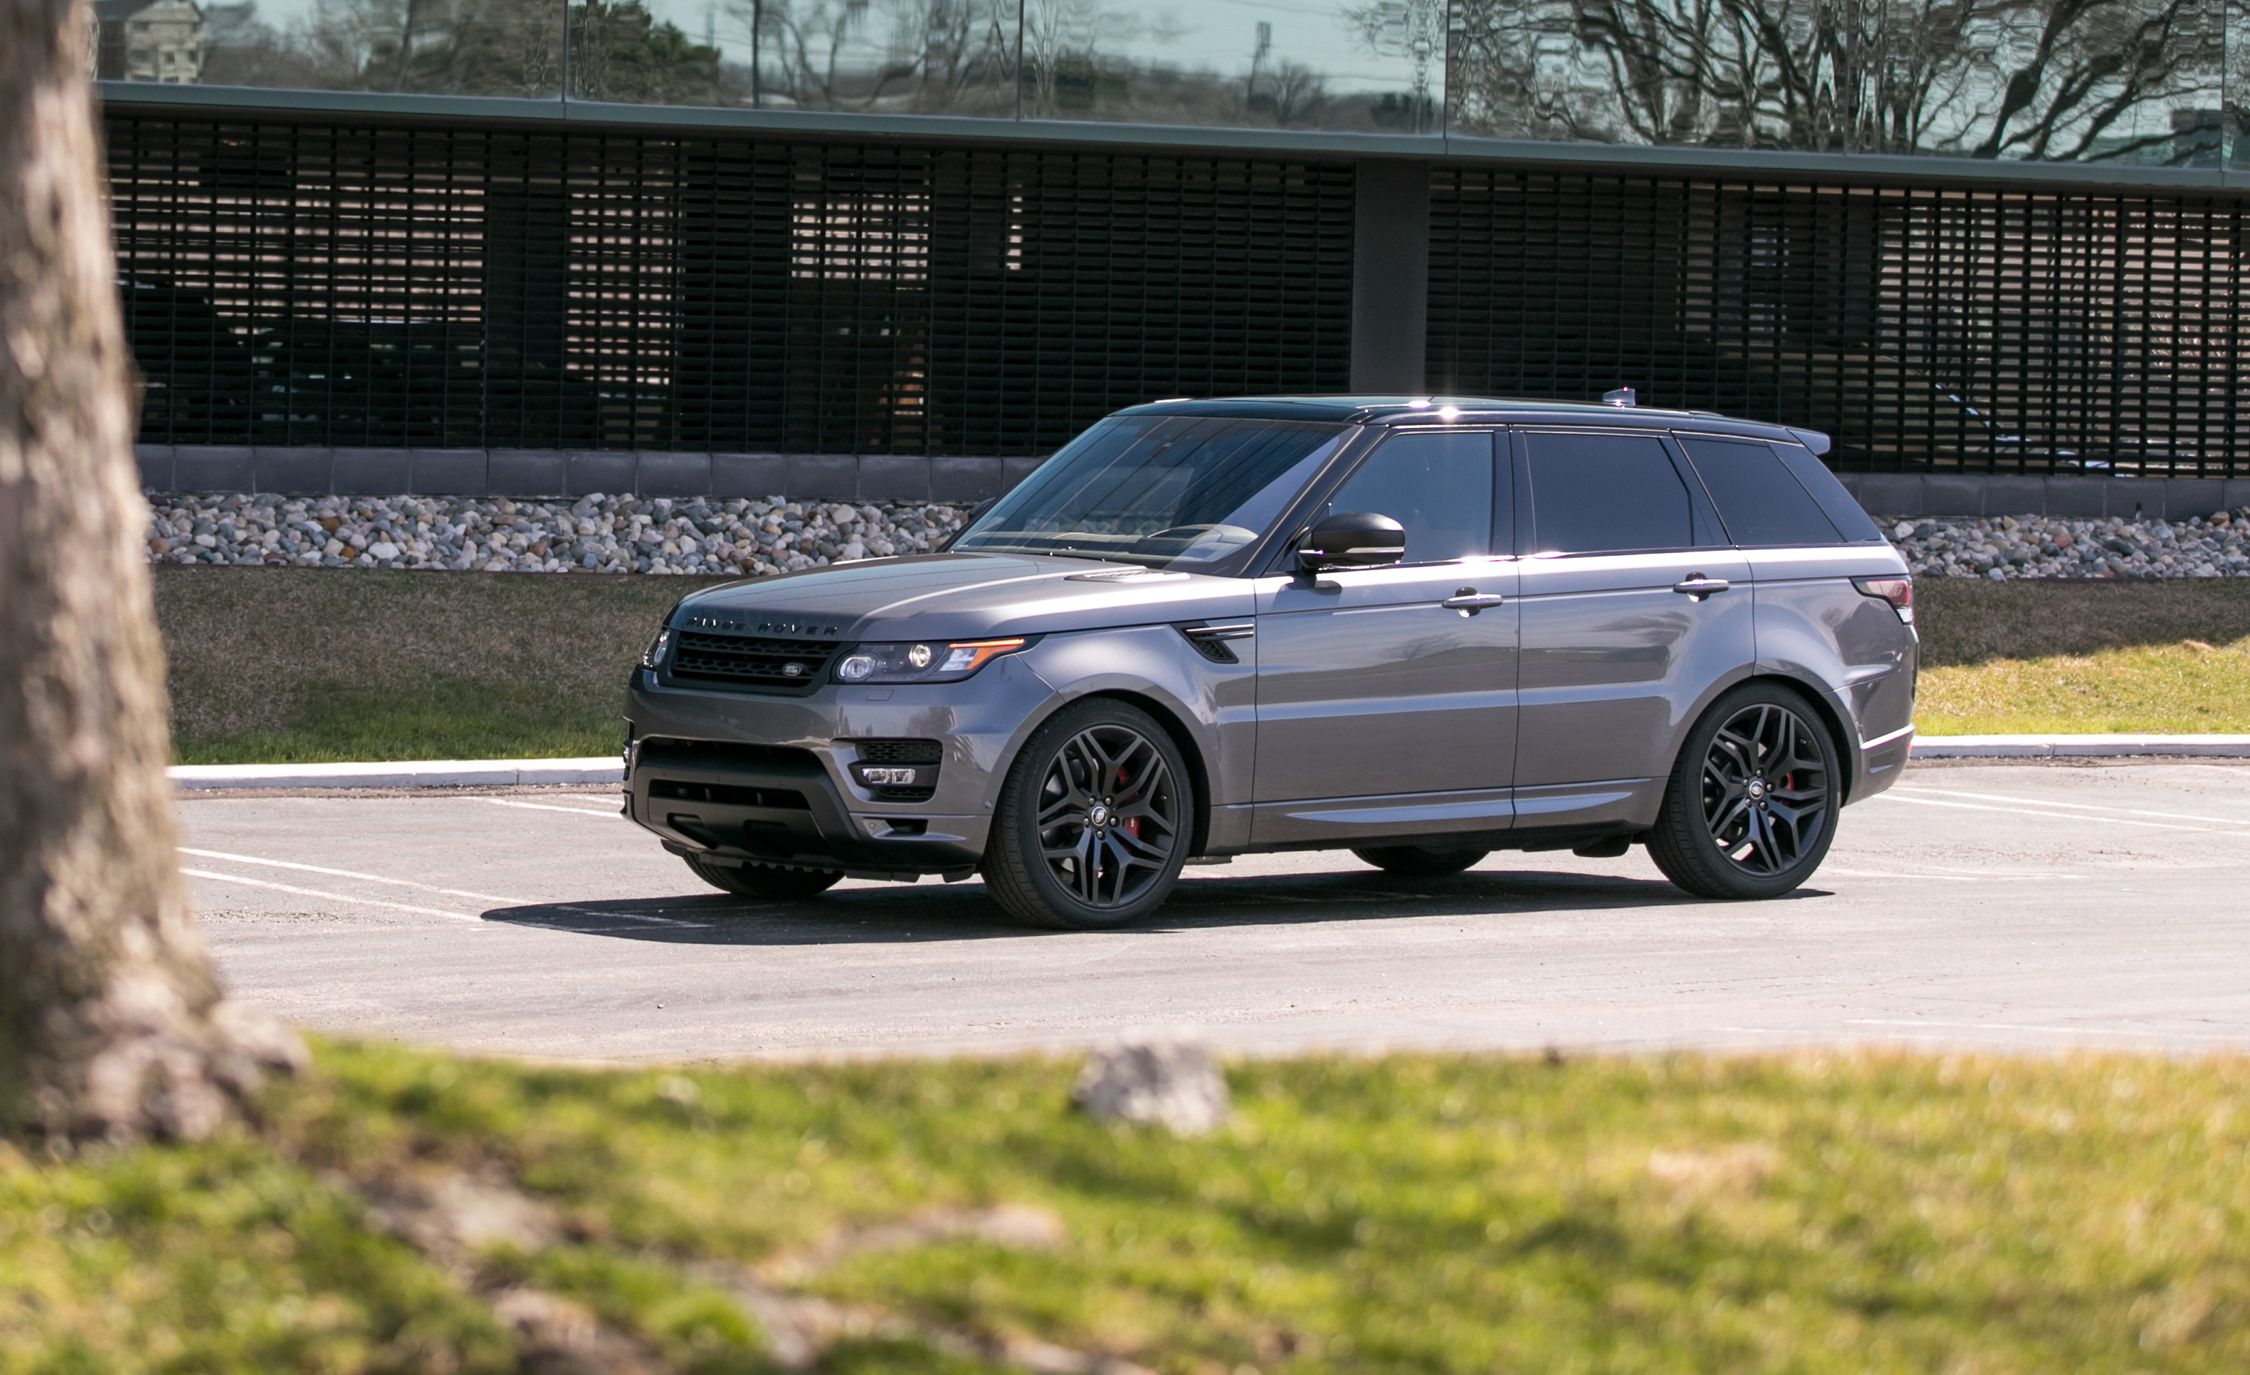 https://hips.hearstapps.com/amv-prod-cad-assets.s3.amazonaws.com/images/media/672263/2017-land-rover-range-rover-sport-supercharged-svr-in-depth-model-review-car-and-driver-photo-685768-s-original.jpg